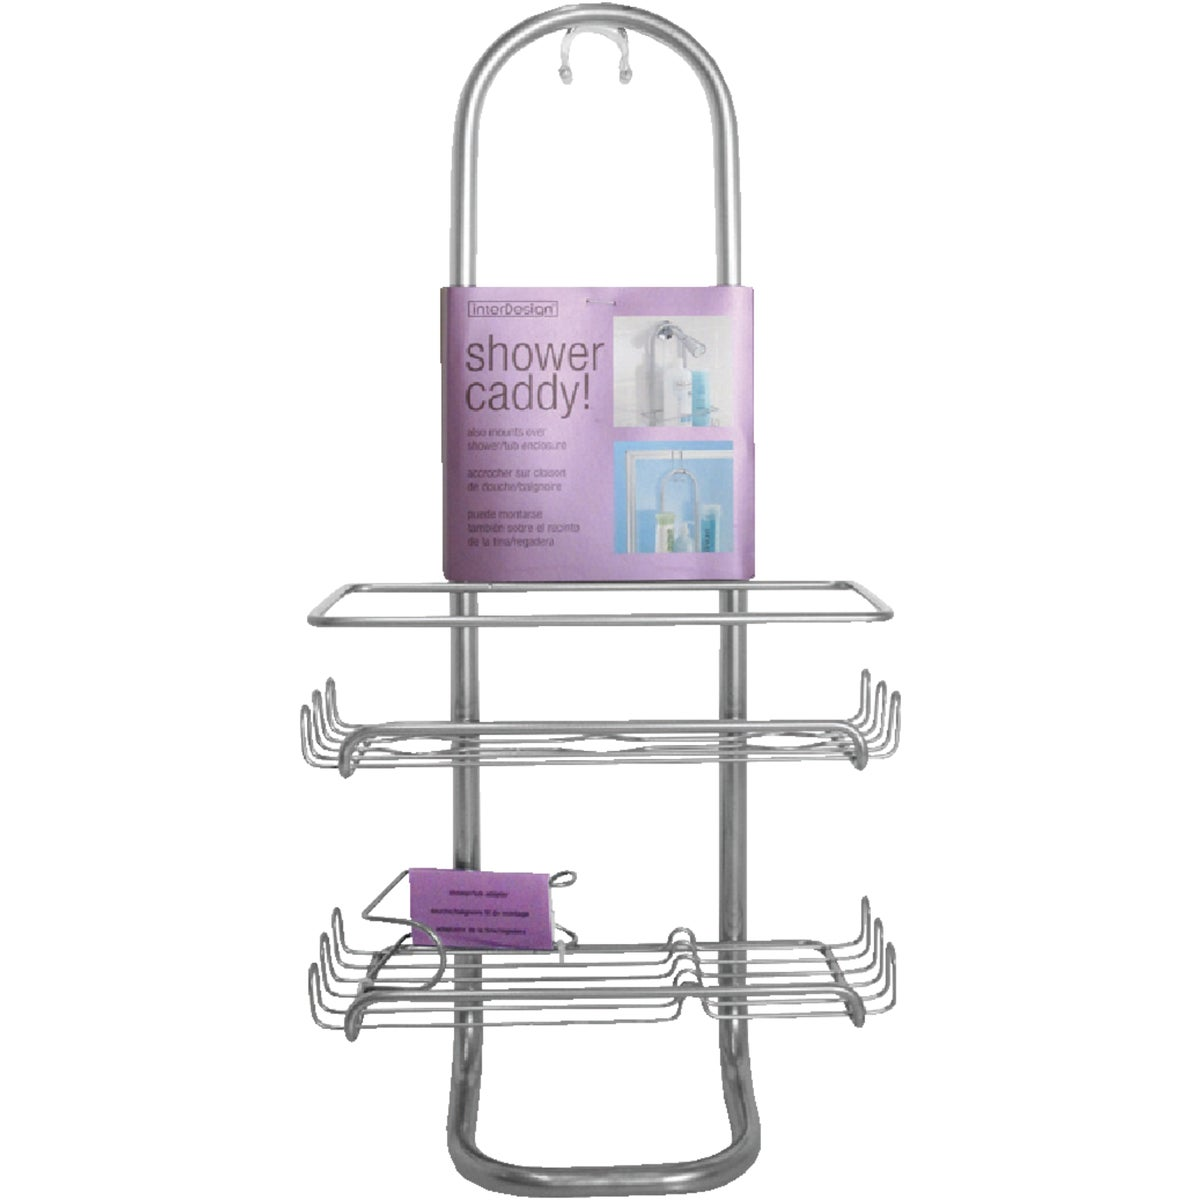 CHROME SHOWER CADDY - 60163 by Interdesign Inc